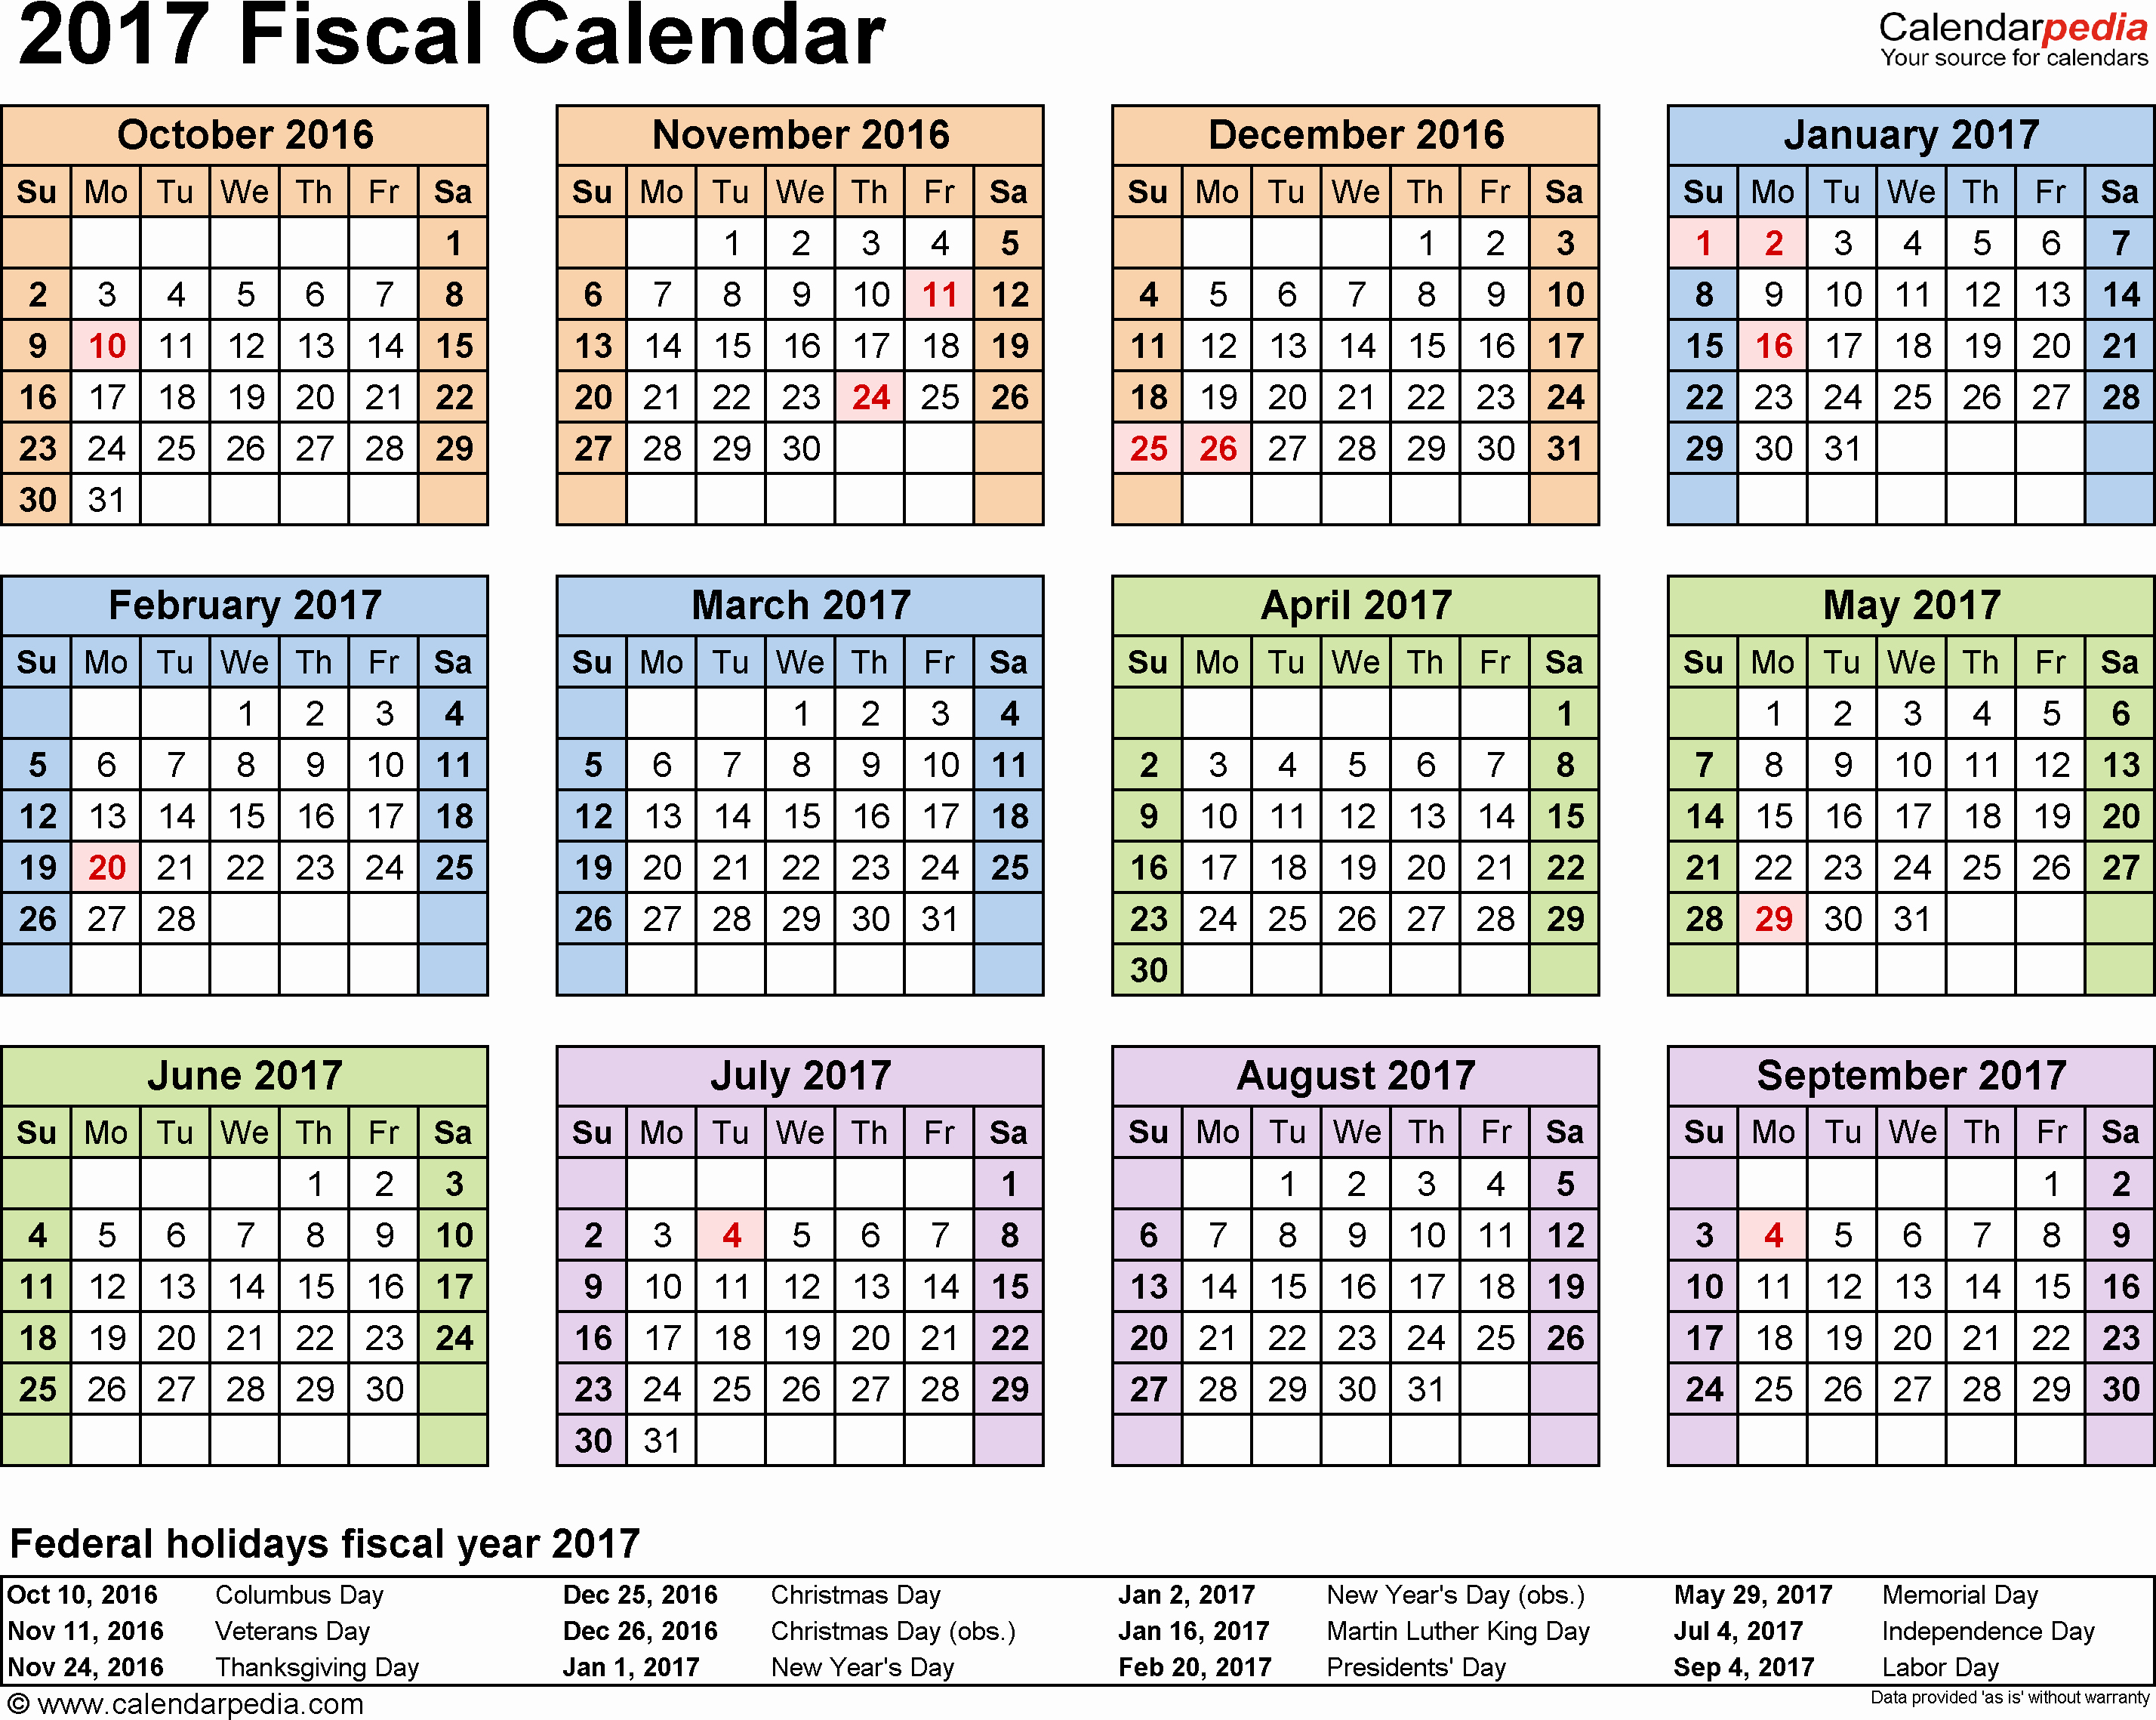 Calendar 2016-17 Template Fresh Fiscal Calendars 2017 as Free Printable Excel Templates